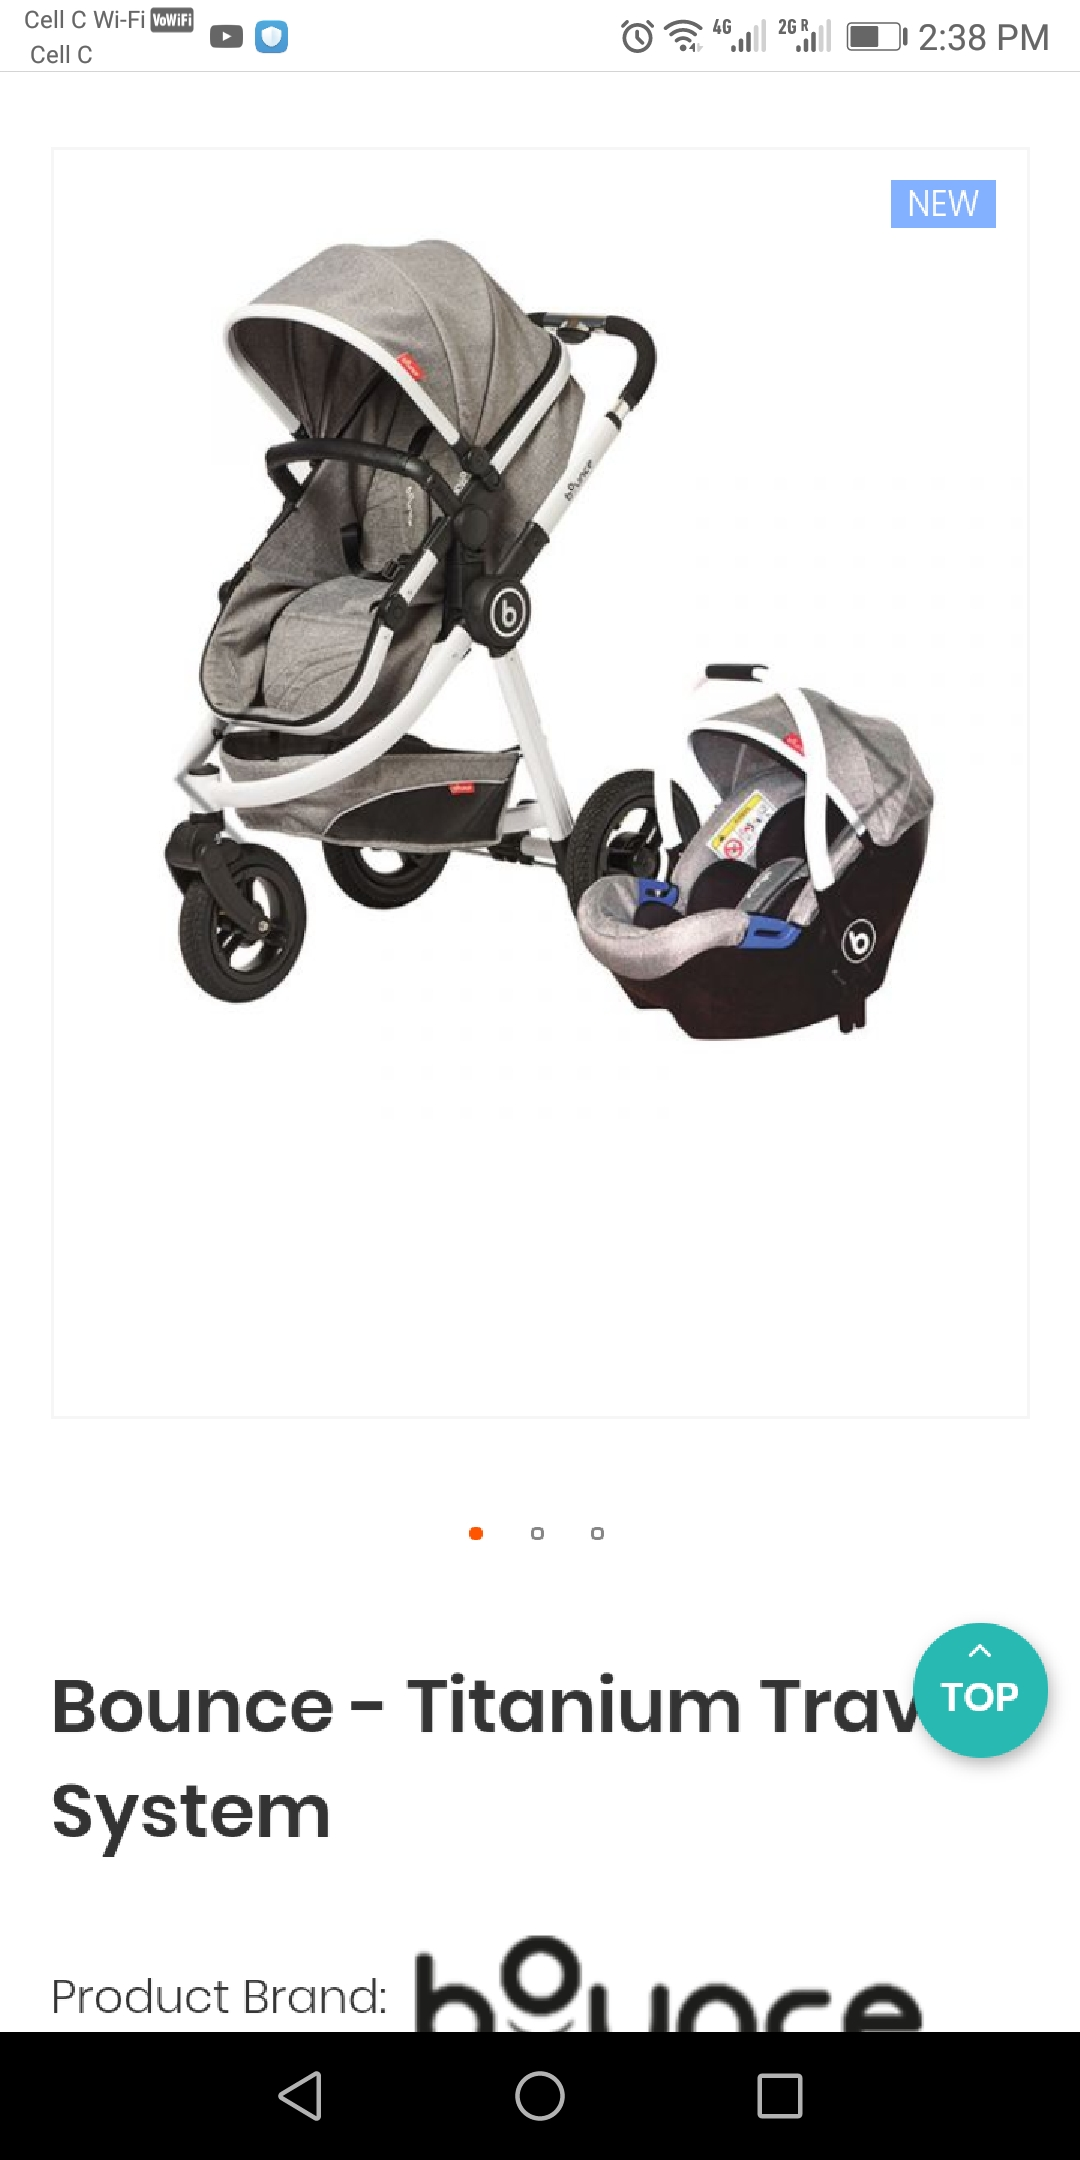 Baby bounce traveling systems